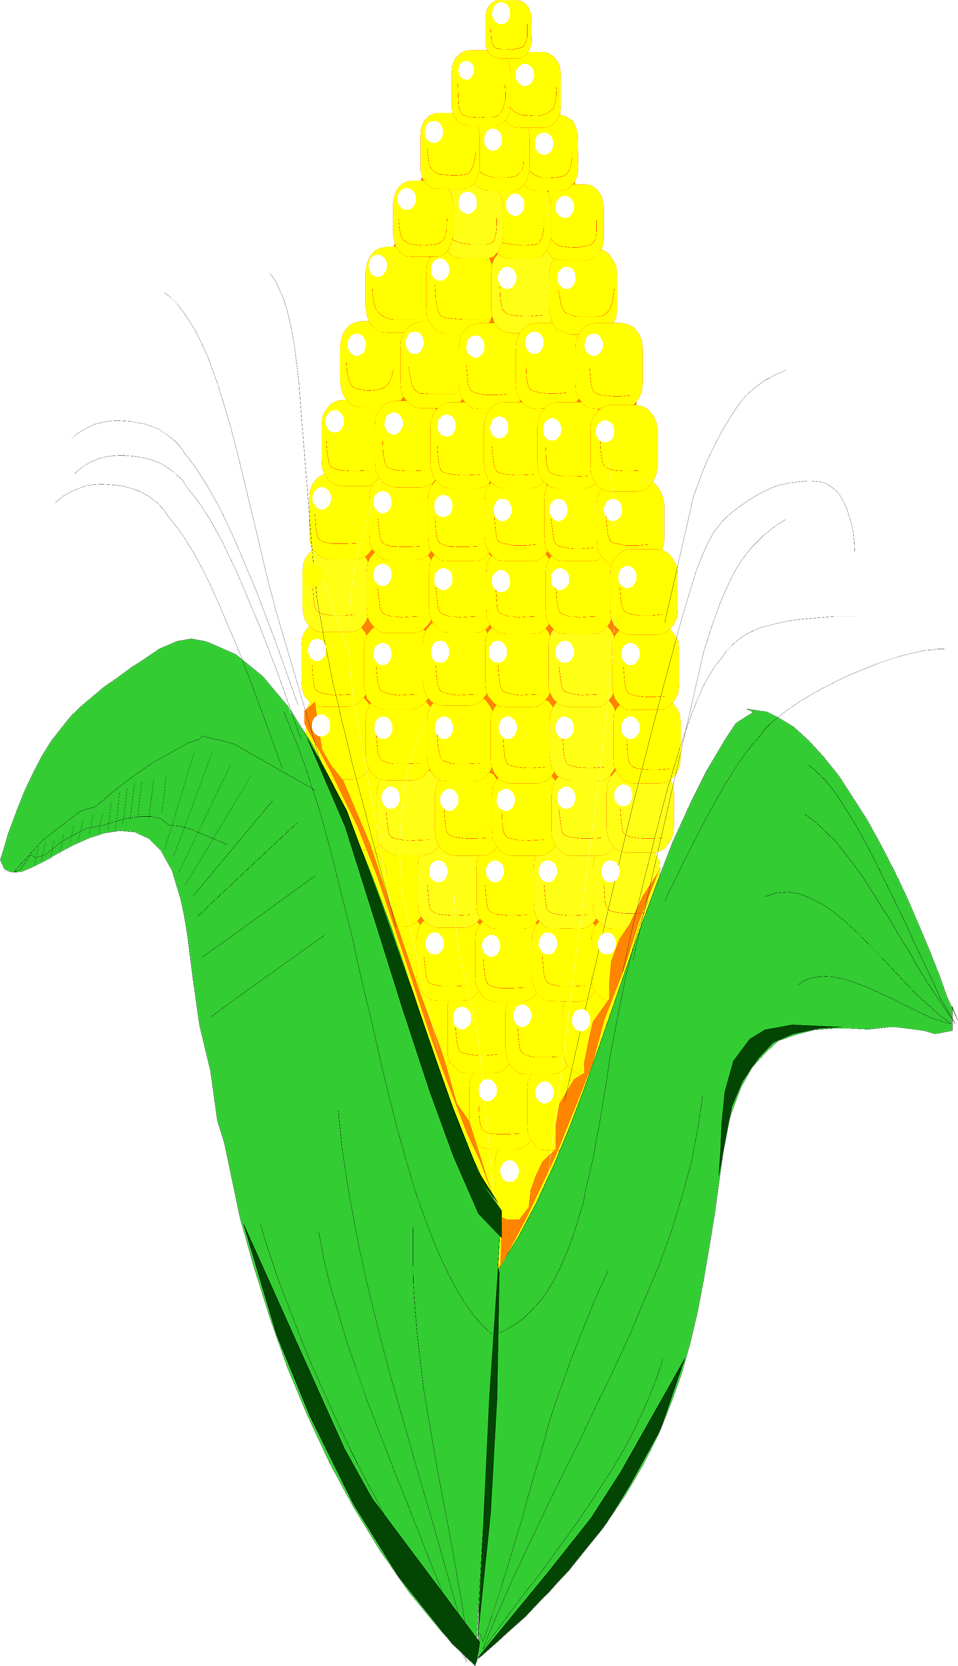 Corn ear clipart #14